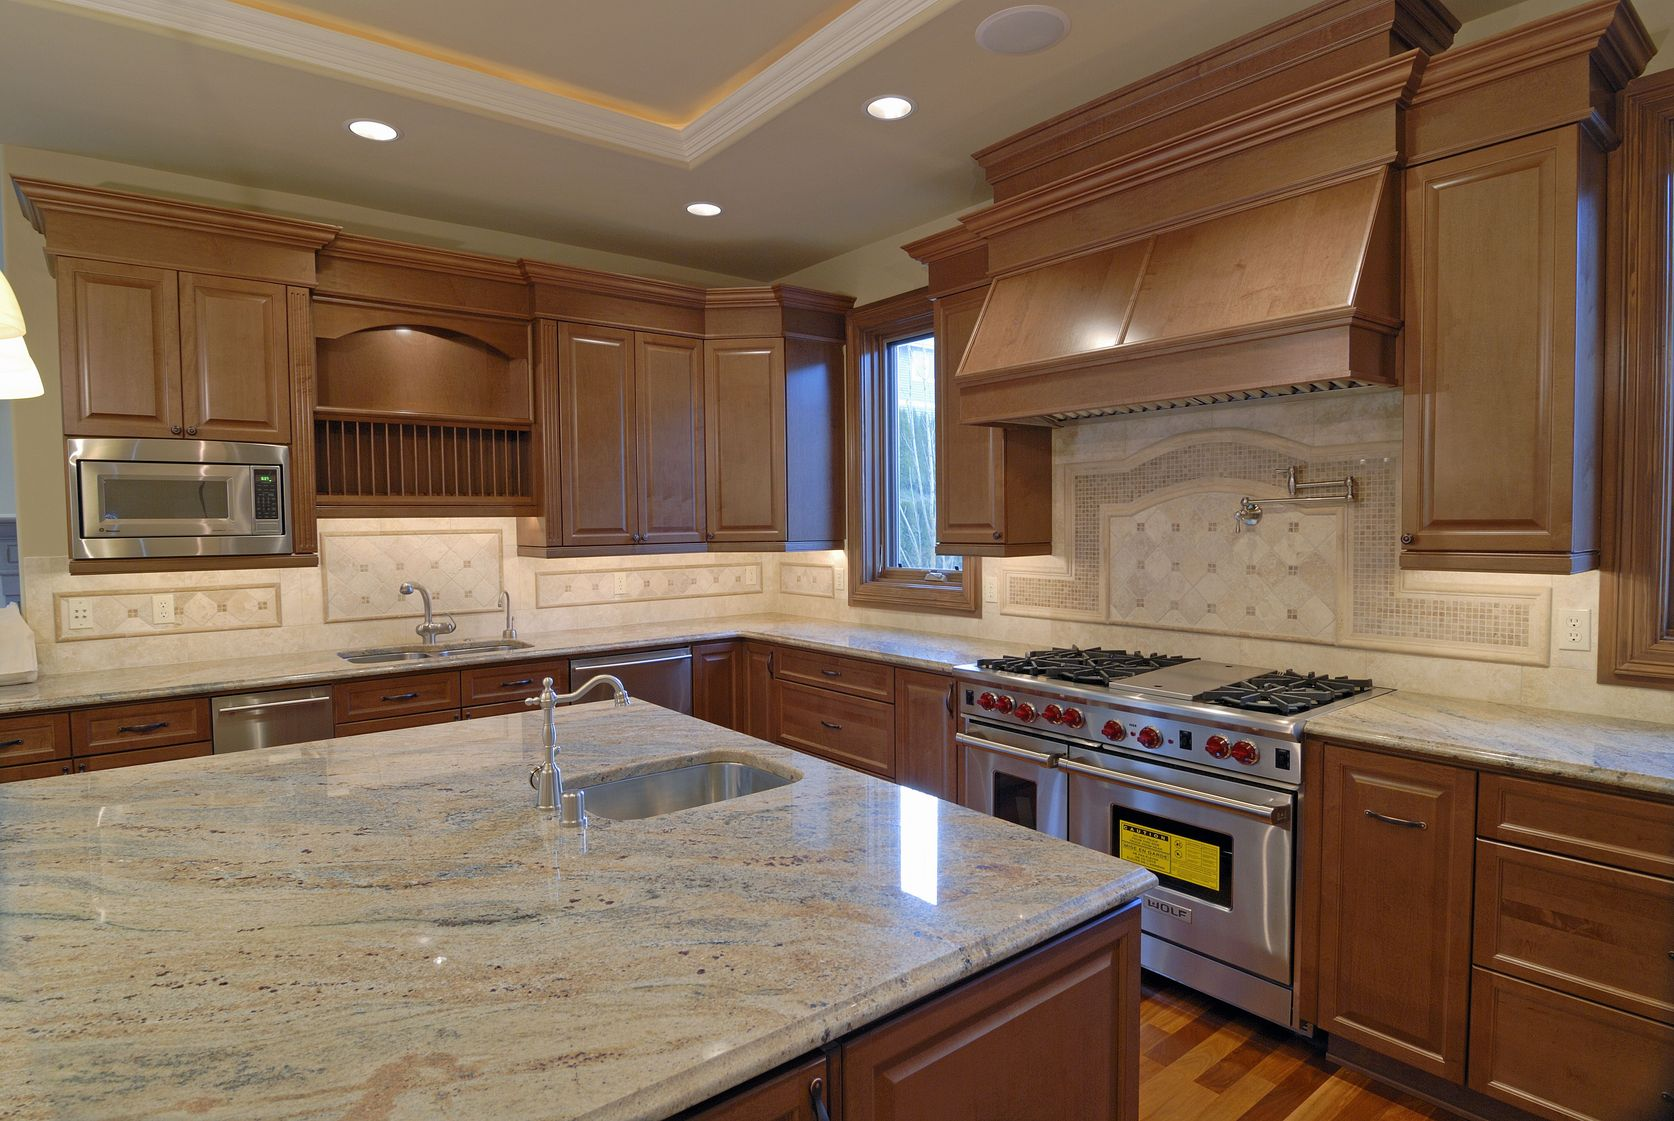 Kitchen remodeling tips how to design a kitchen with for Remodeling your kitchen